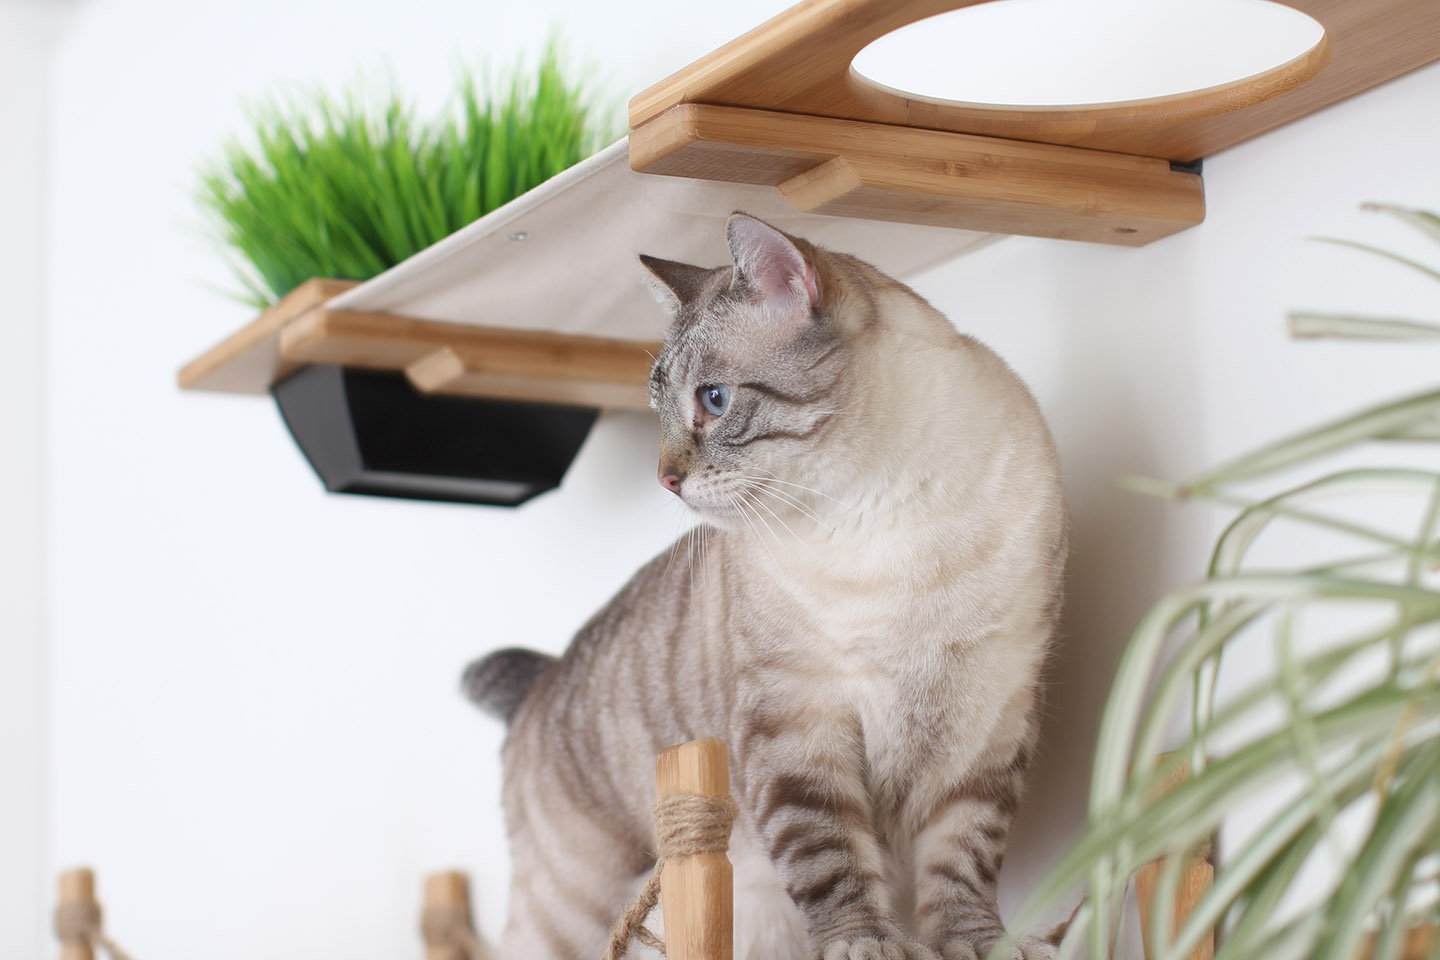 This photo displays a close up of one of our cats on The Juggernaut. This complex is in Natural, a light brown stain, and has Natural fabric, a light tan color.